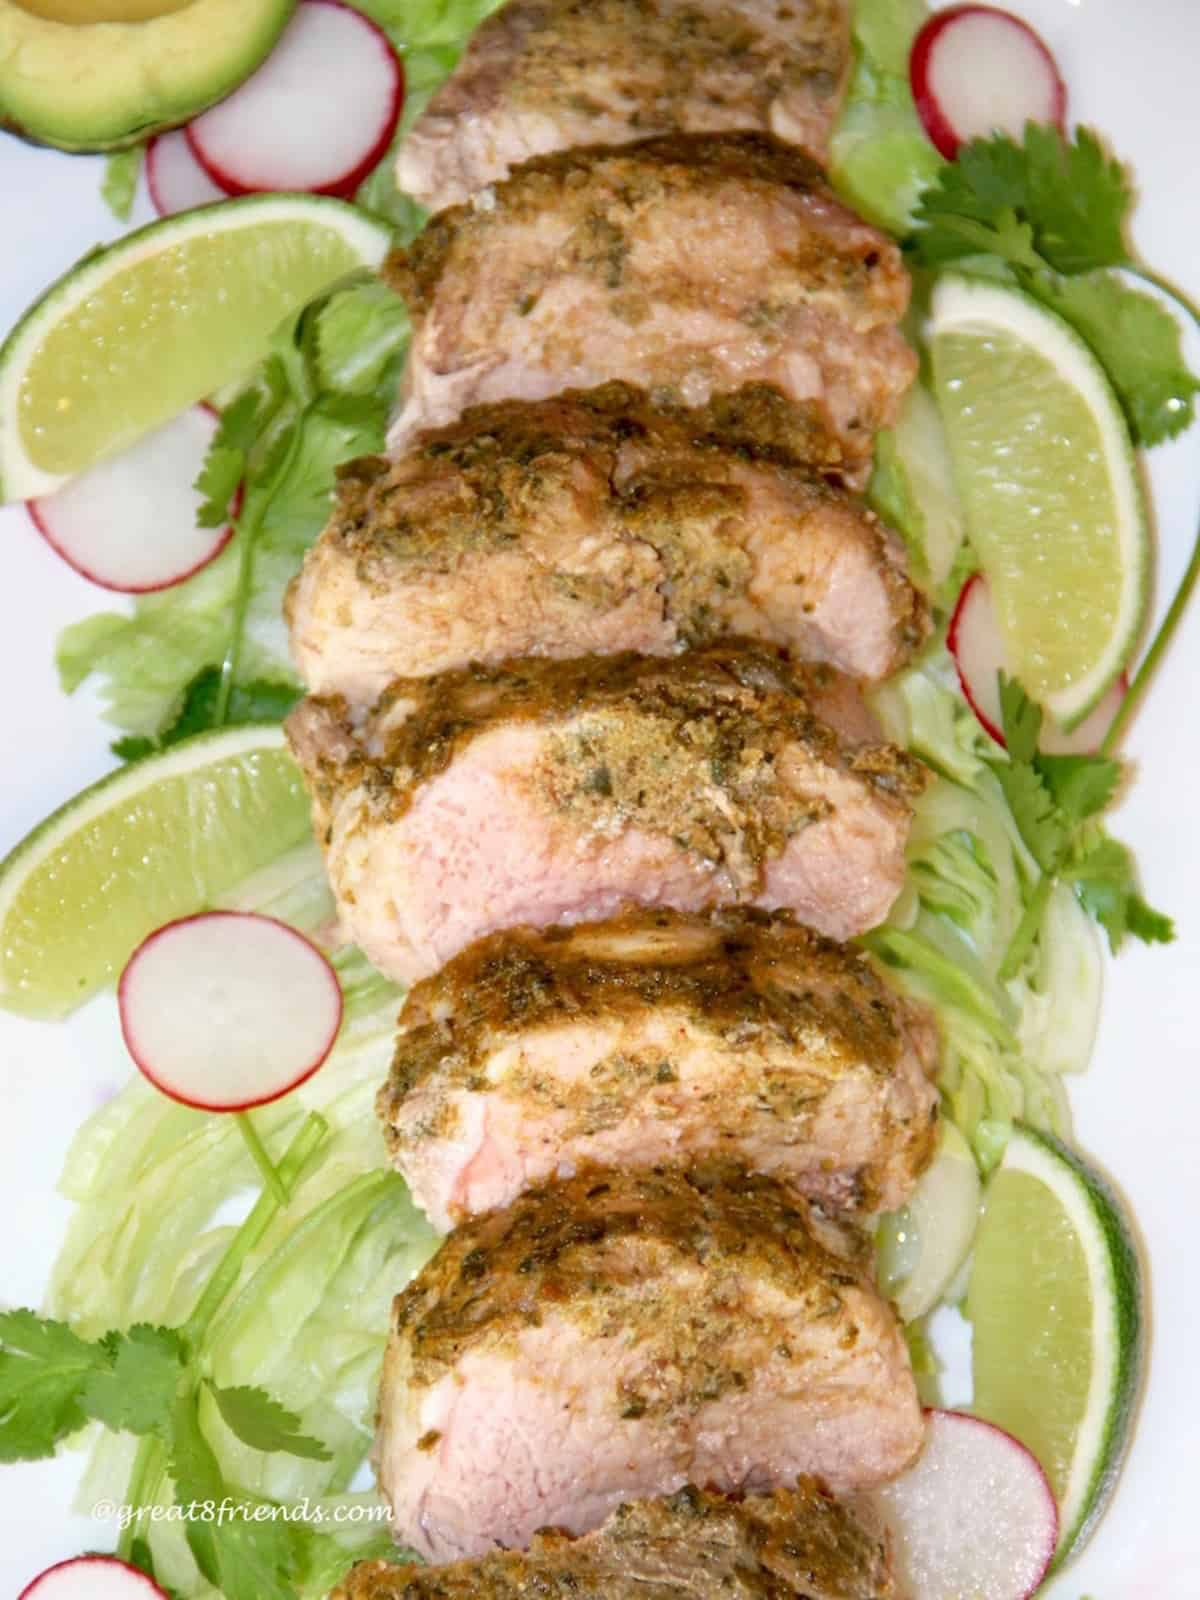 Sliced pork tenderloin on a platter with an adobe sauce on top laying on lettuce, cilantro, limes and sliced radishes.